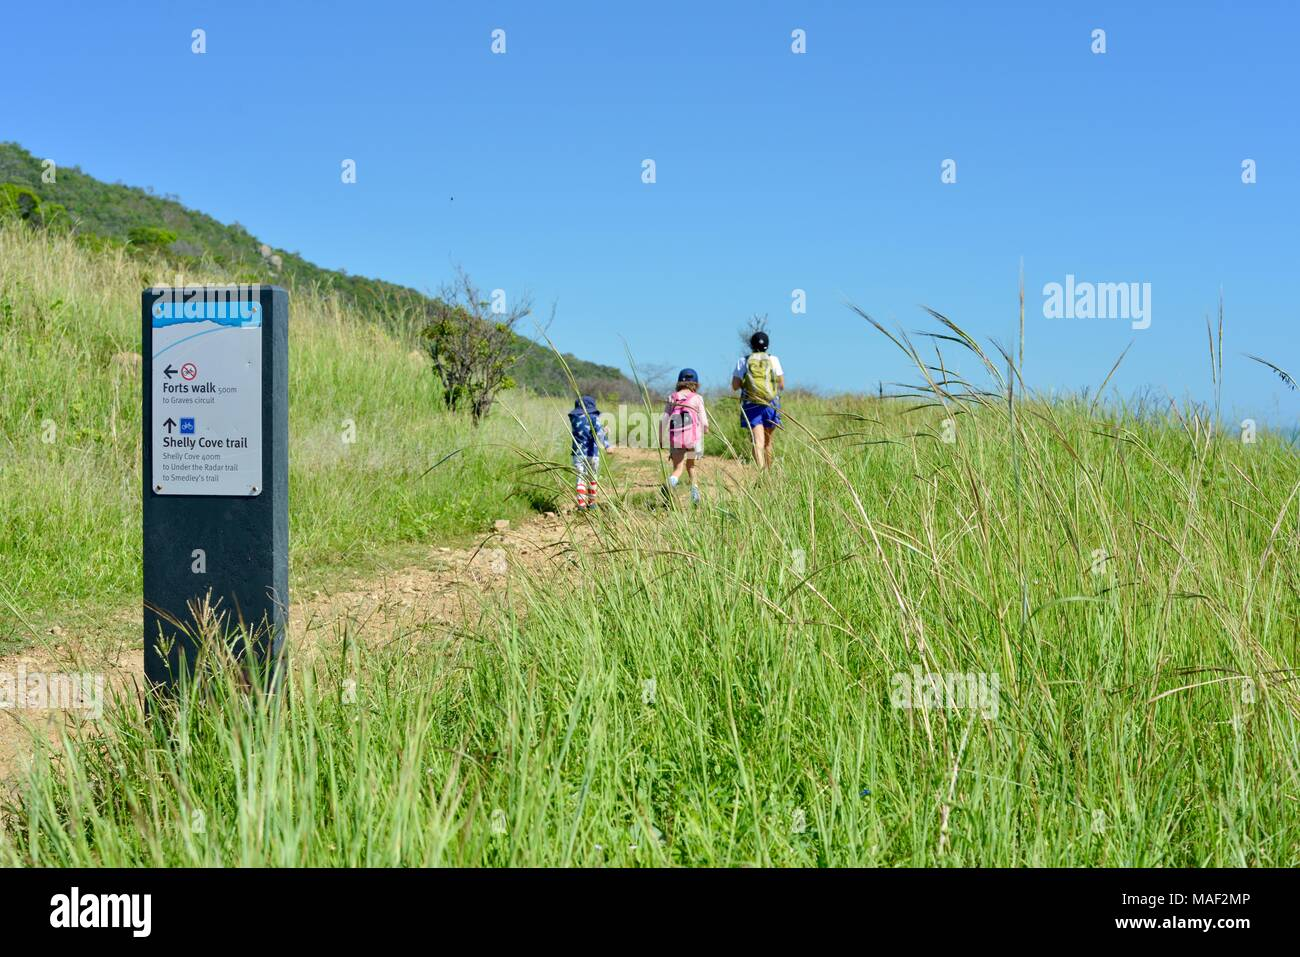 walking two track trail stock photos  u0026 walking two track trail stock images